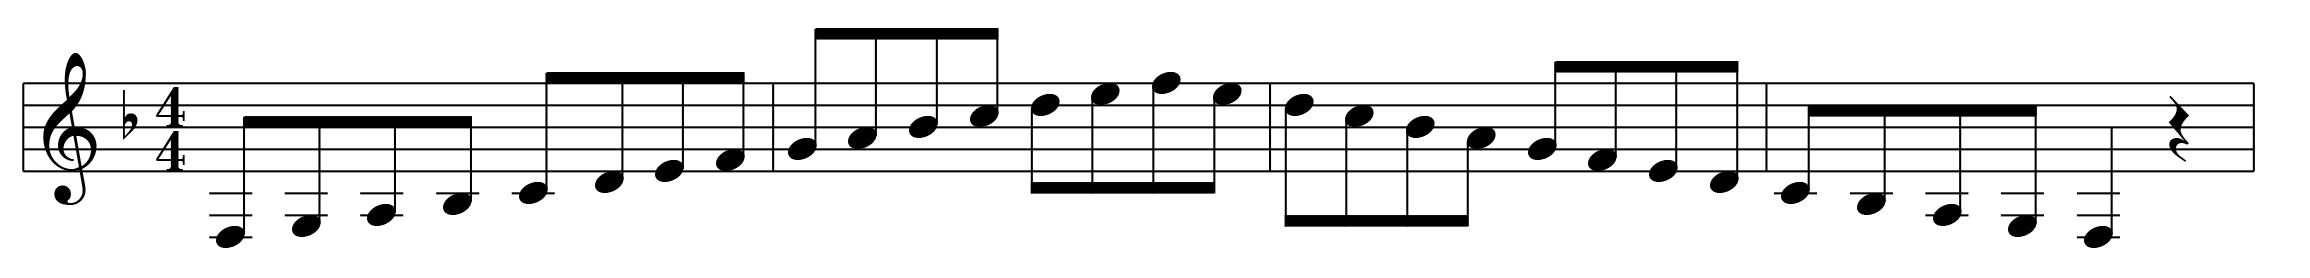 F Major Scale Right Hand